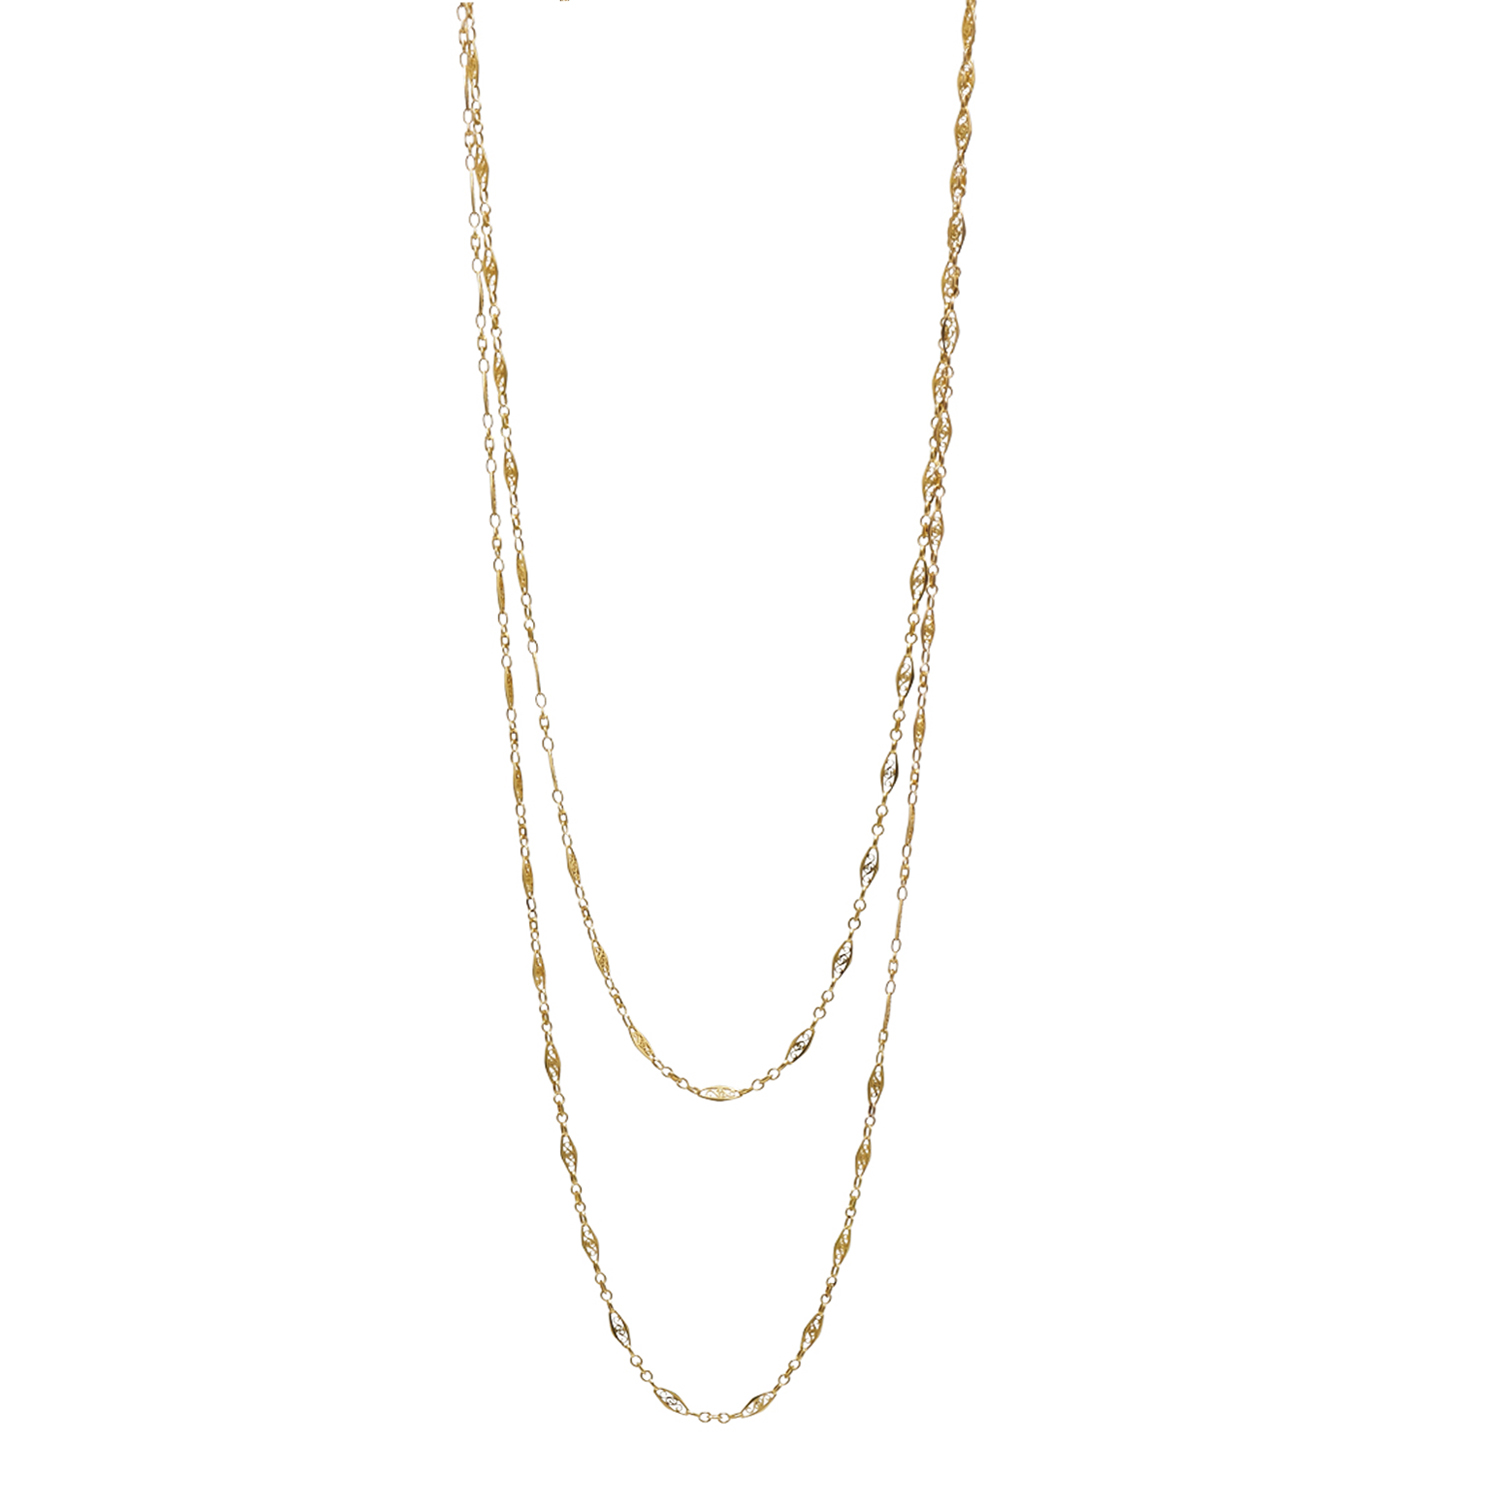 Antique 18K Yellow Gold Filigree Link Long Chain Style N-40882-FL-0-0